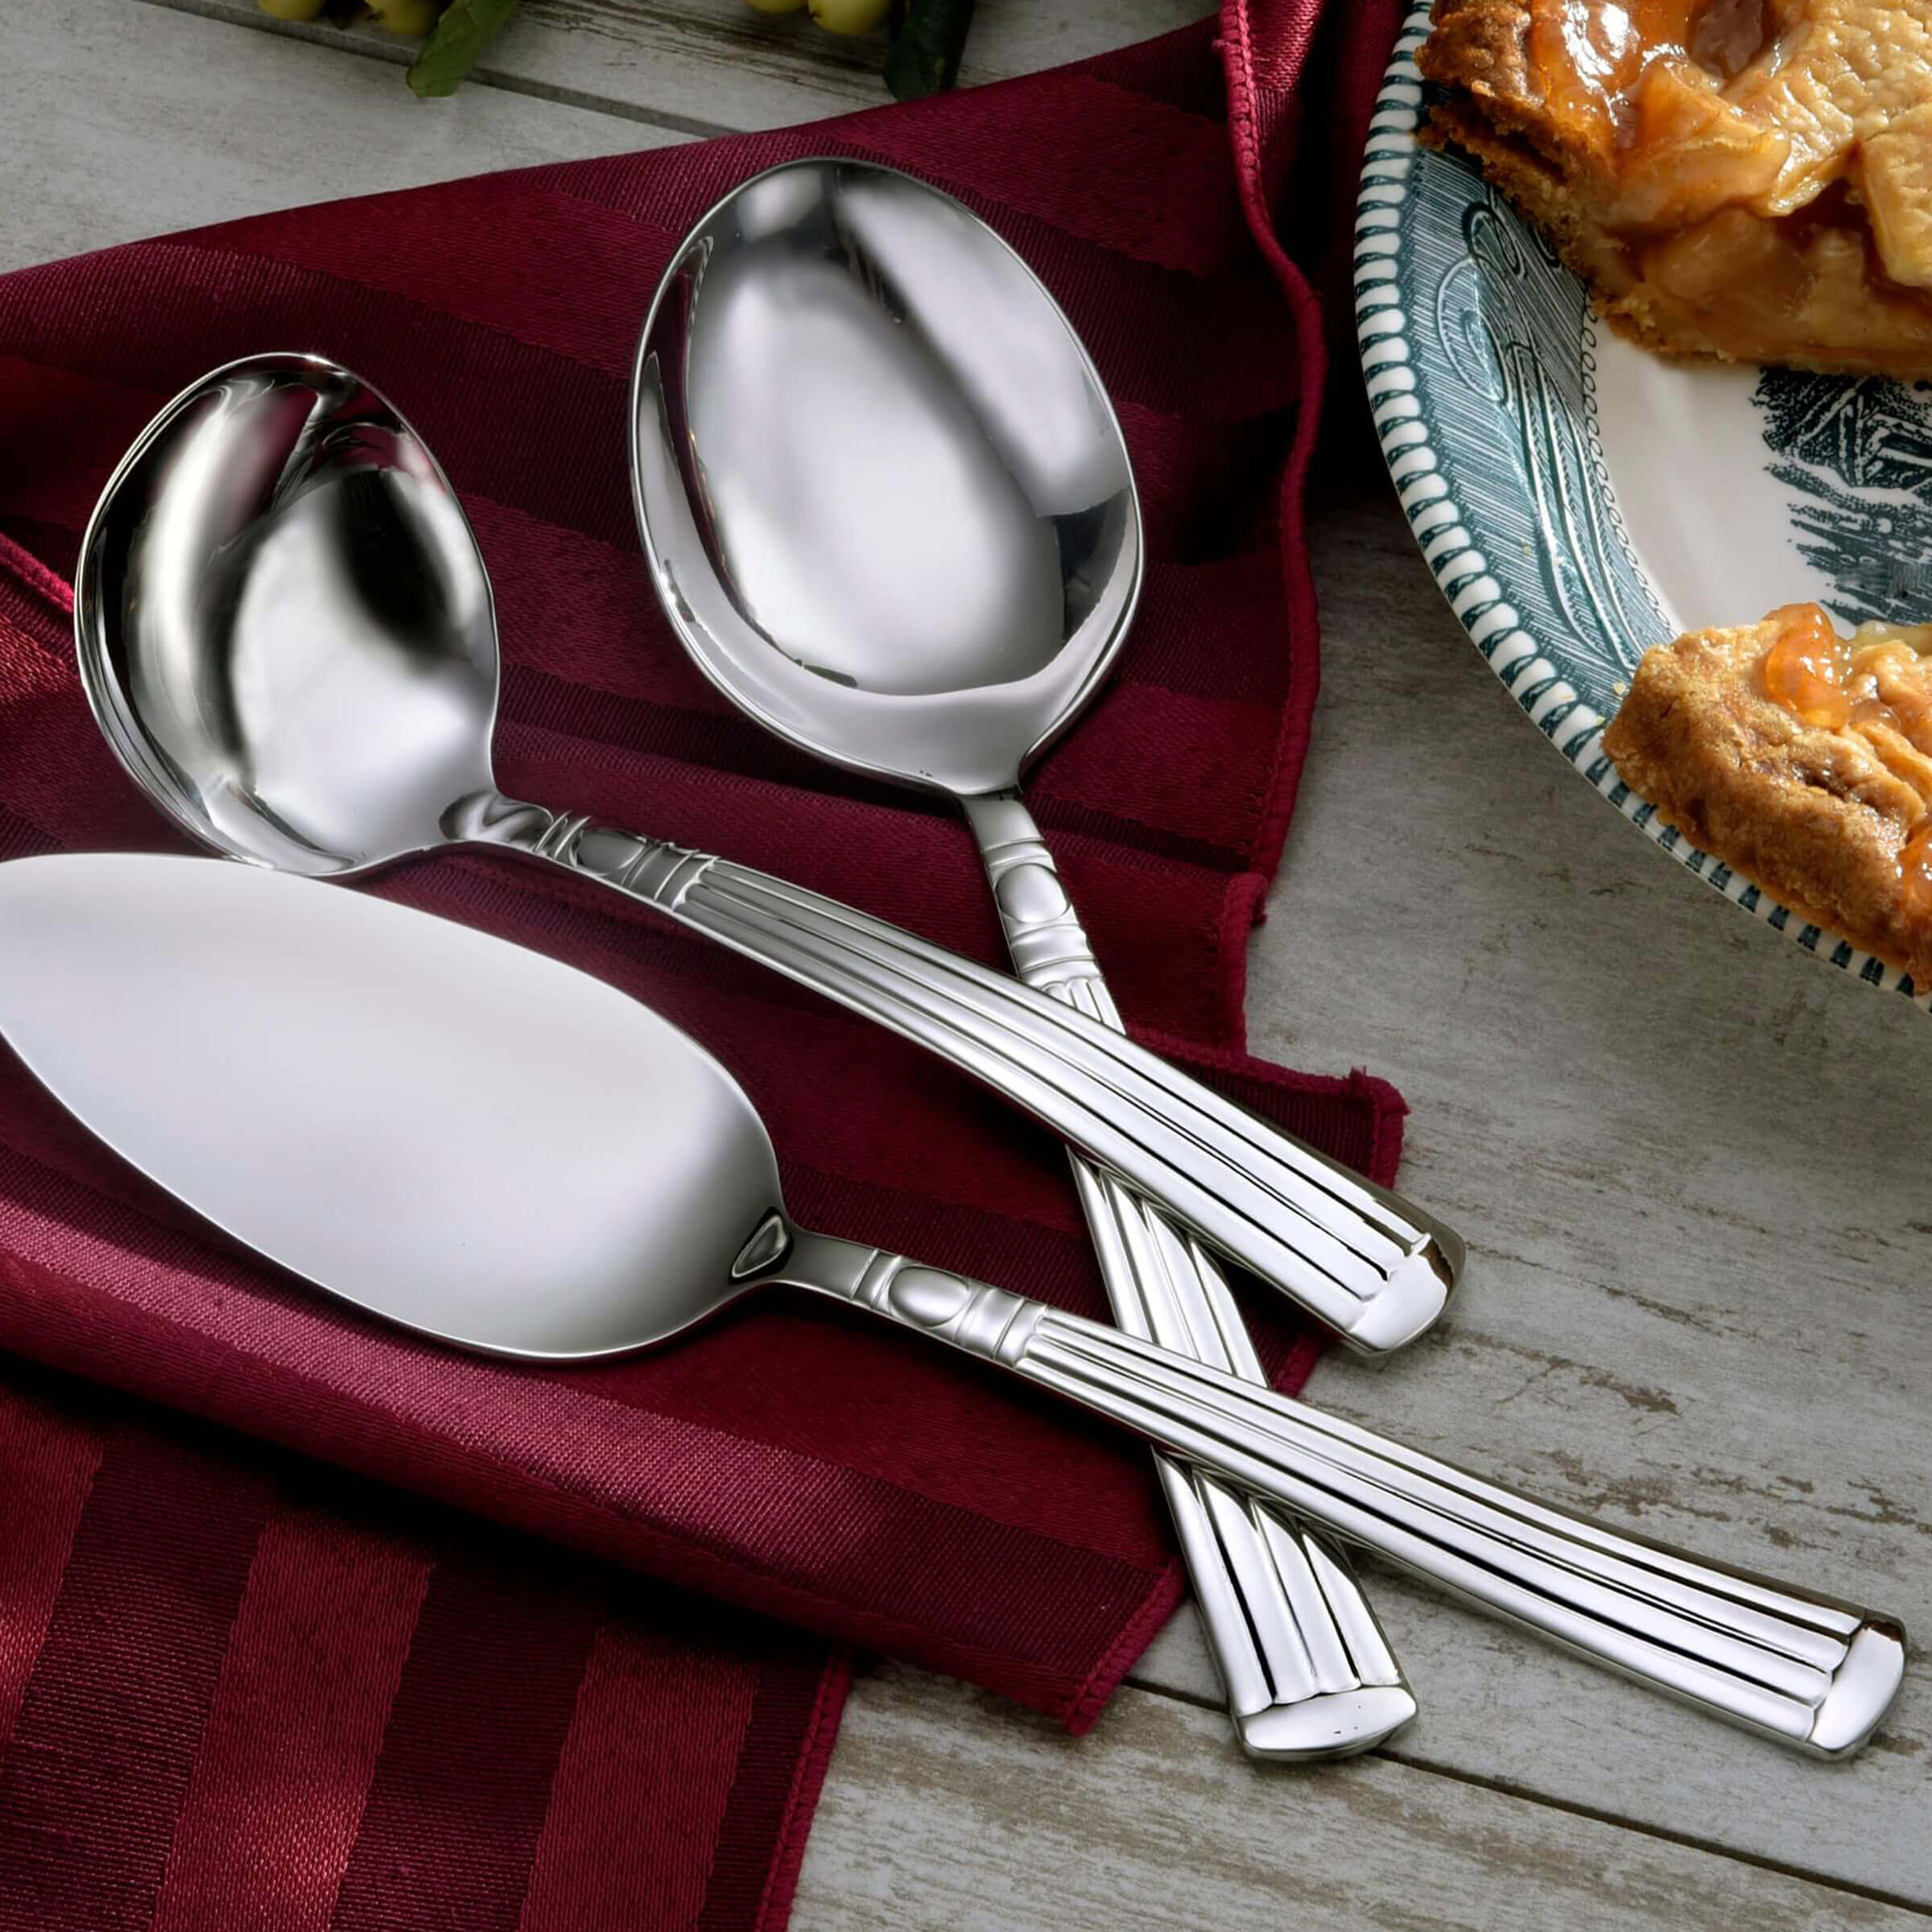 Lincoln Liberty Tabletop The Only Flatware Made In The Usa